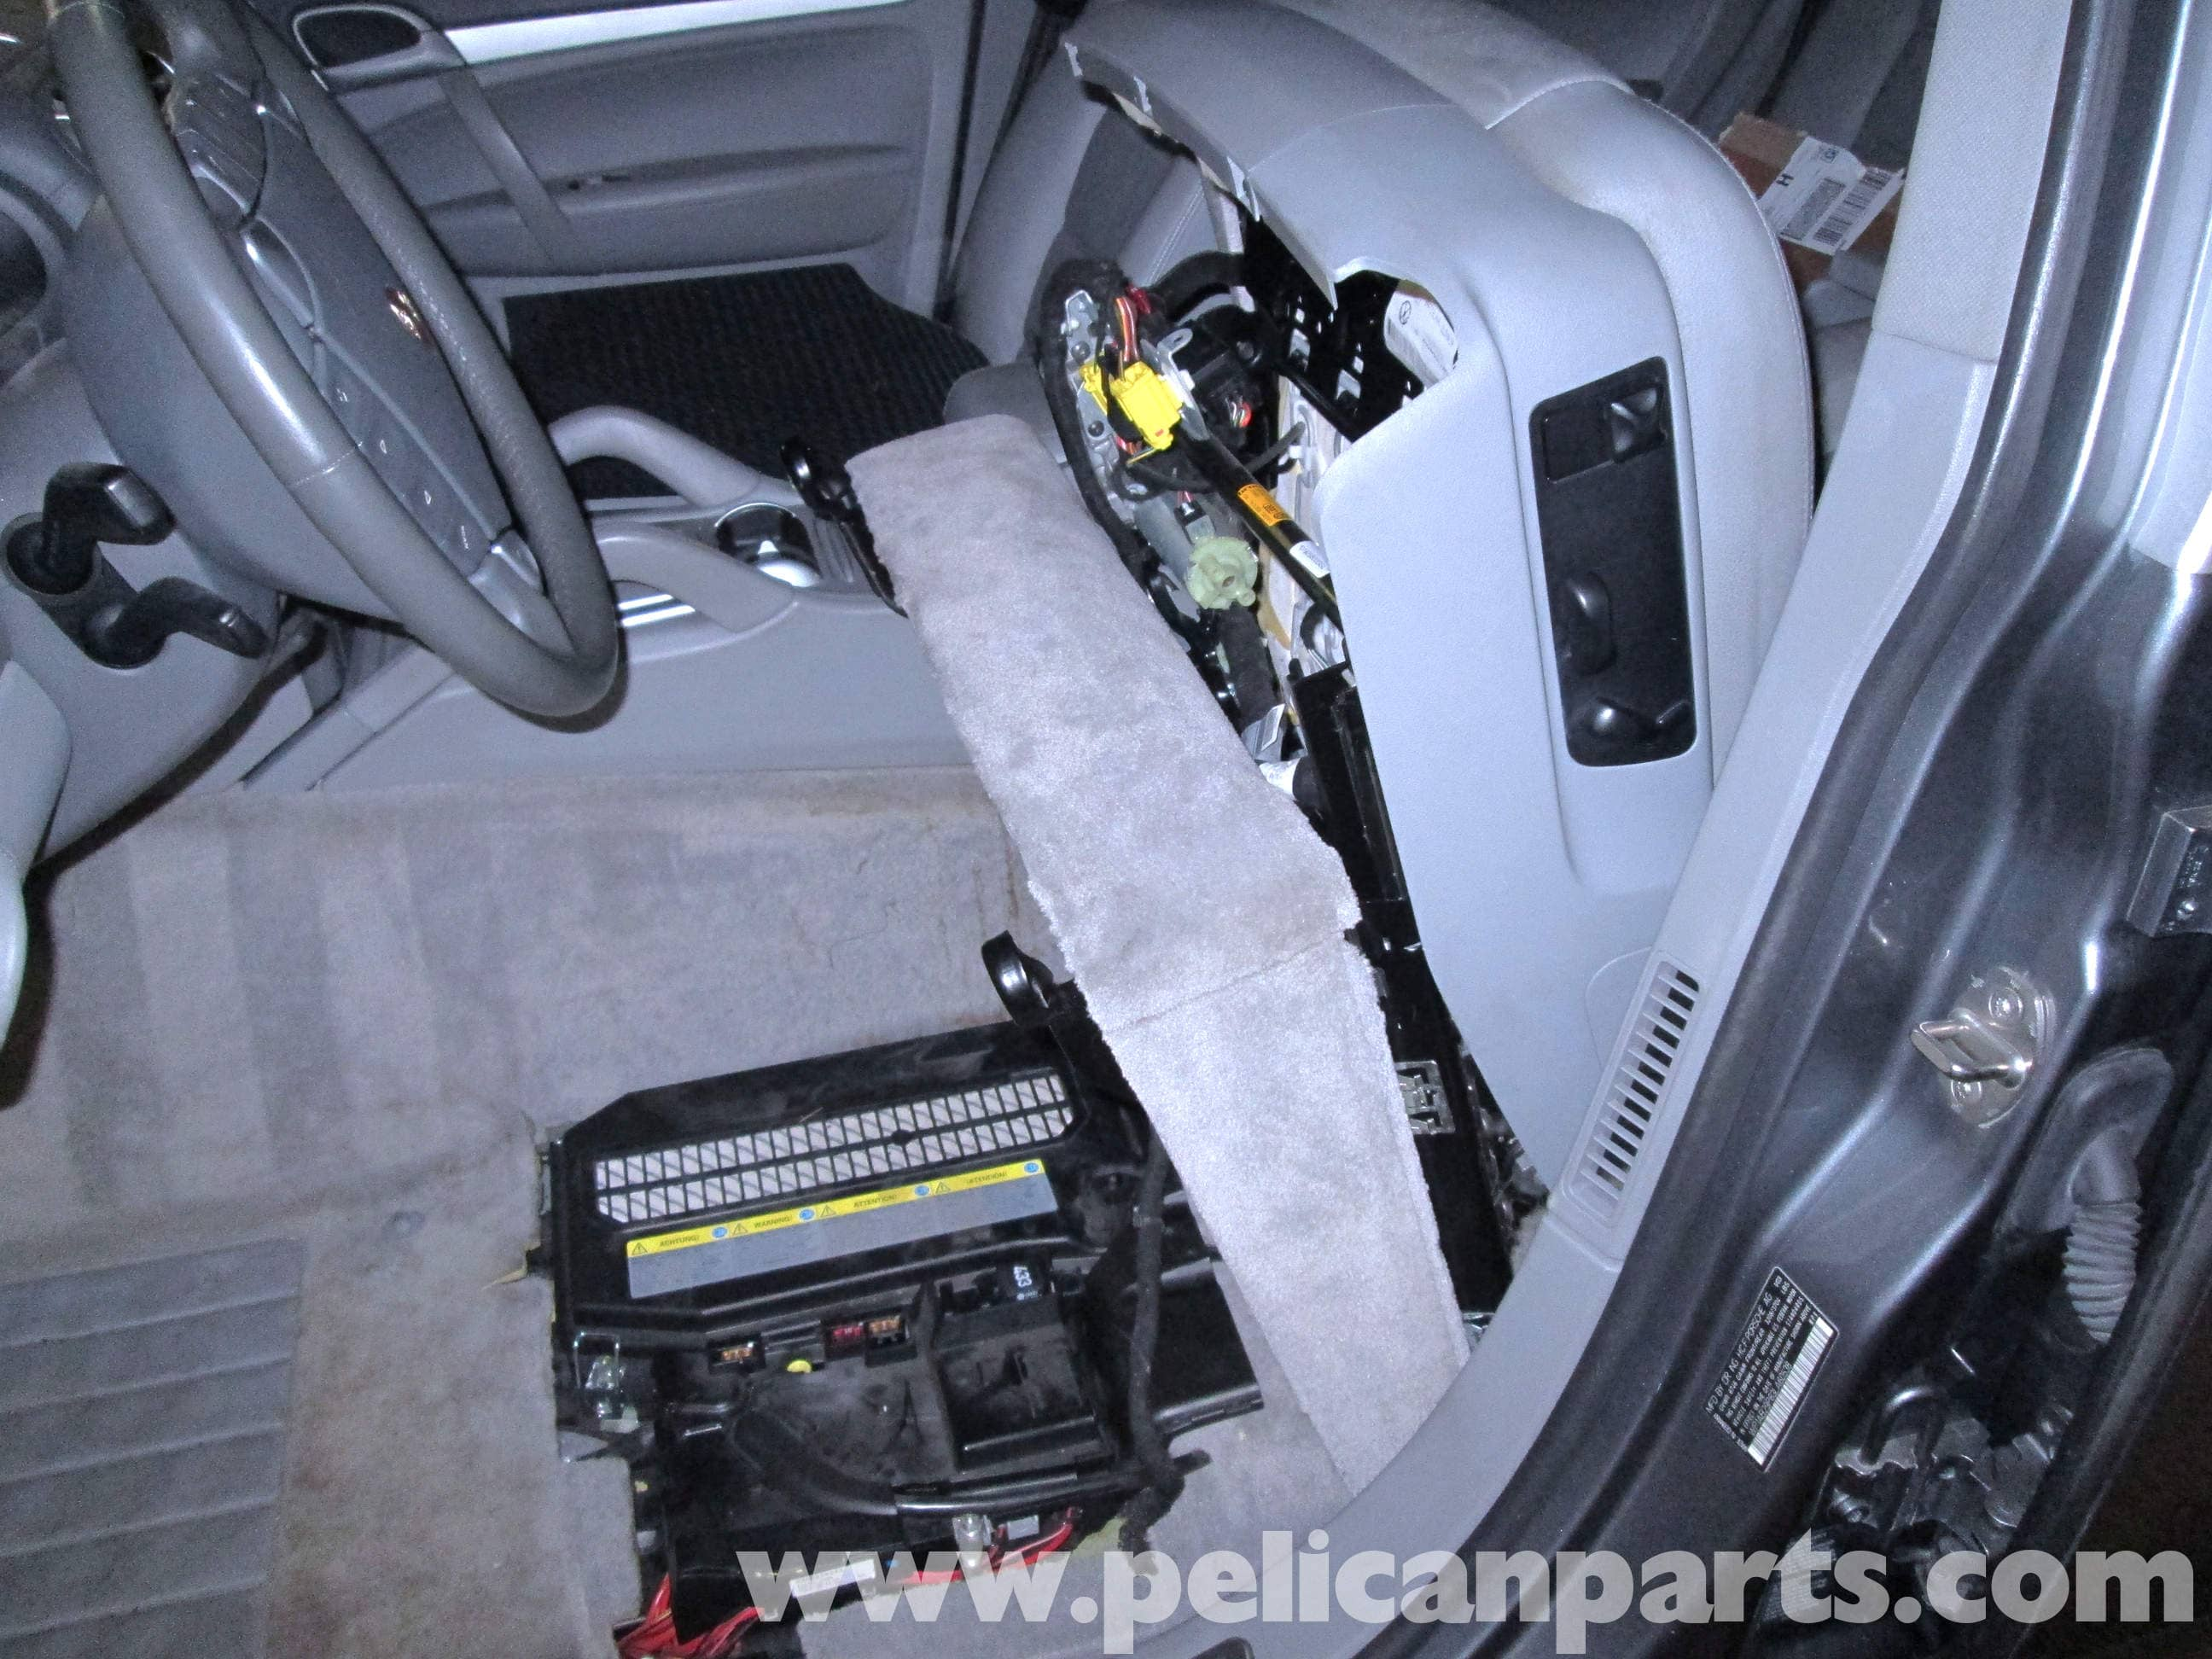 pic09 porsche cayenne battery replacement 2003 2008 pelican parts 2004 Porsche Cayenne Twin Turbo at virtualis.co